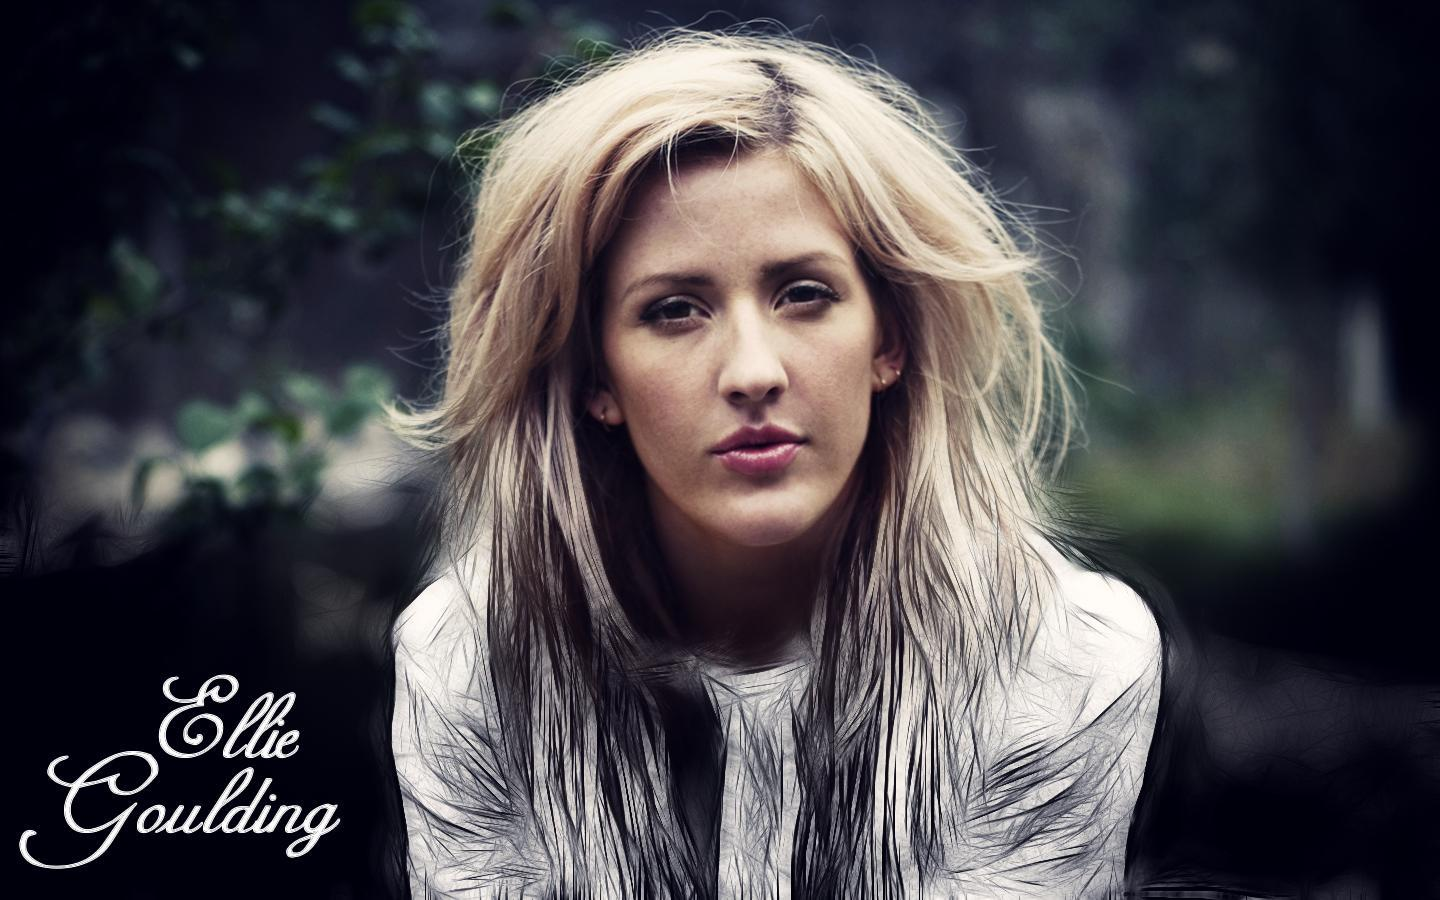 Ellie Goulding Wallpapers For Mobile 18616 Wallpaper